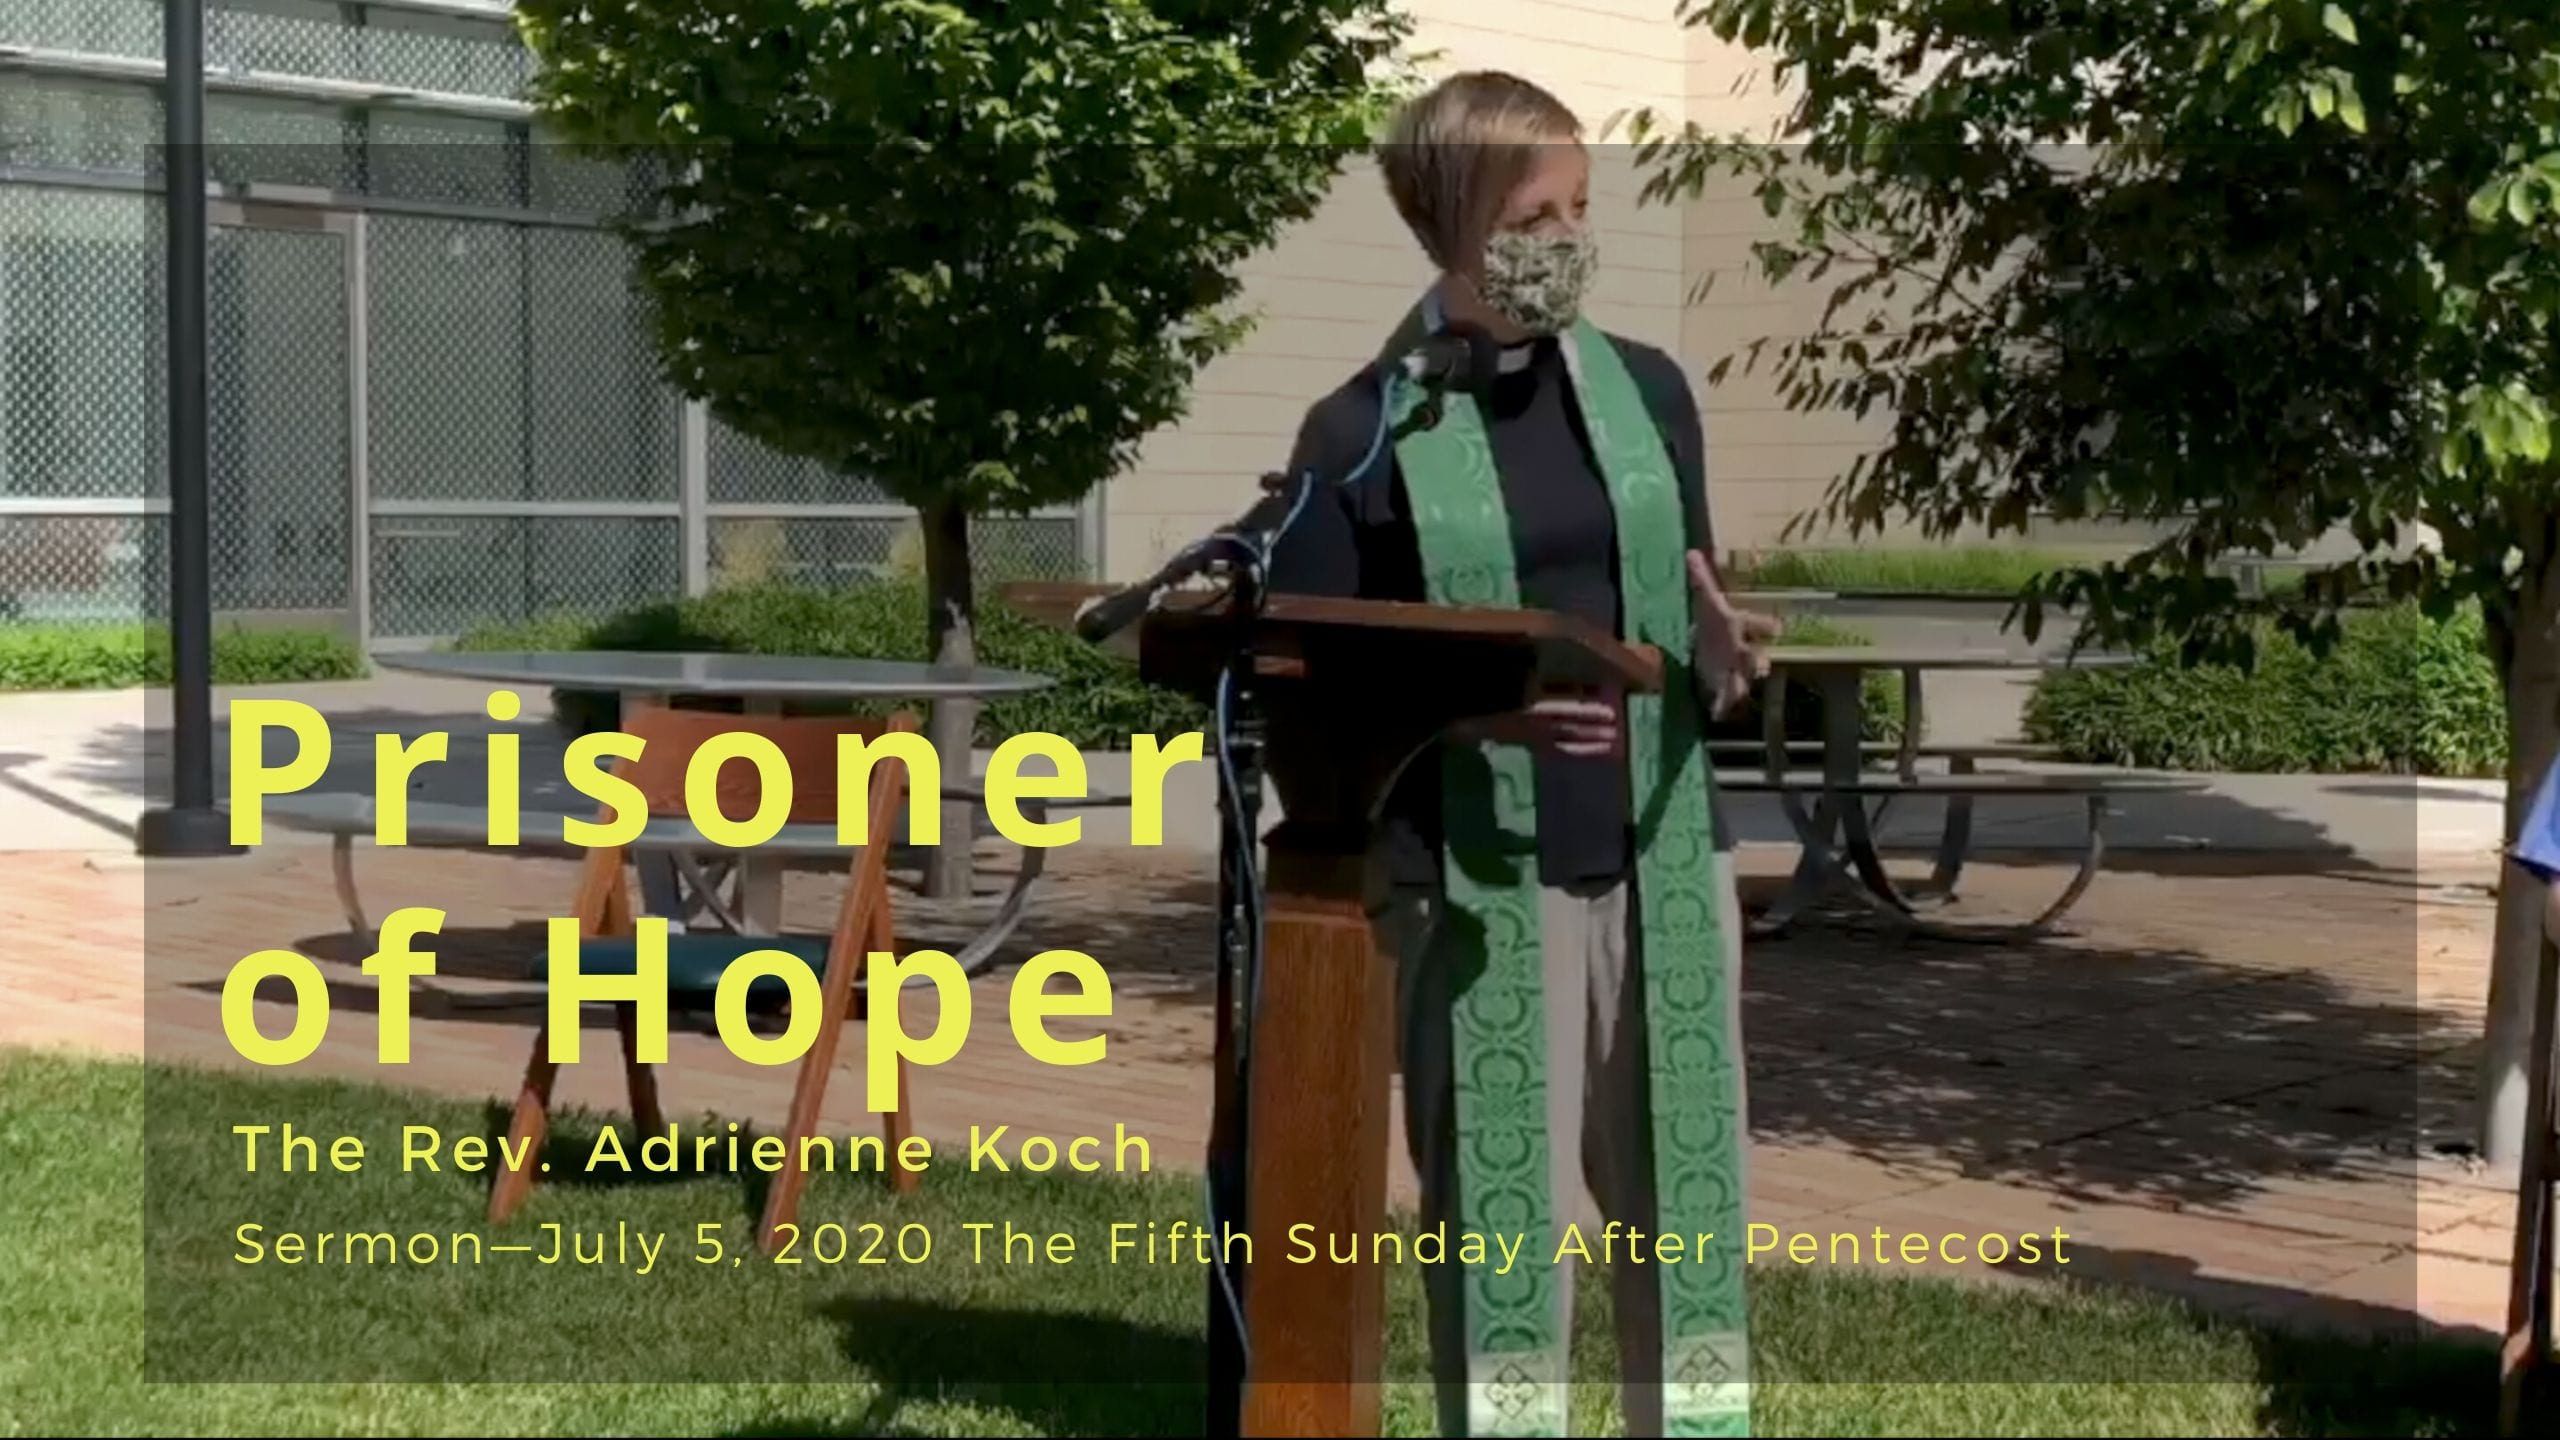 Video Sermon: Prisoner of Hope